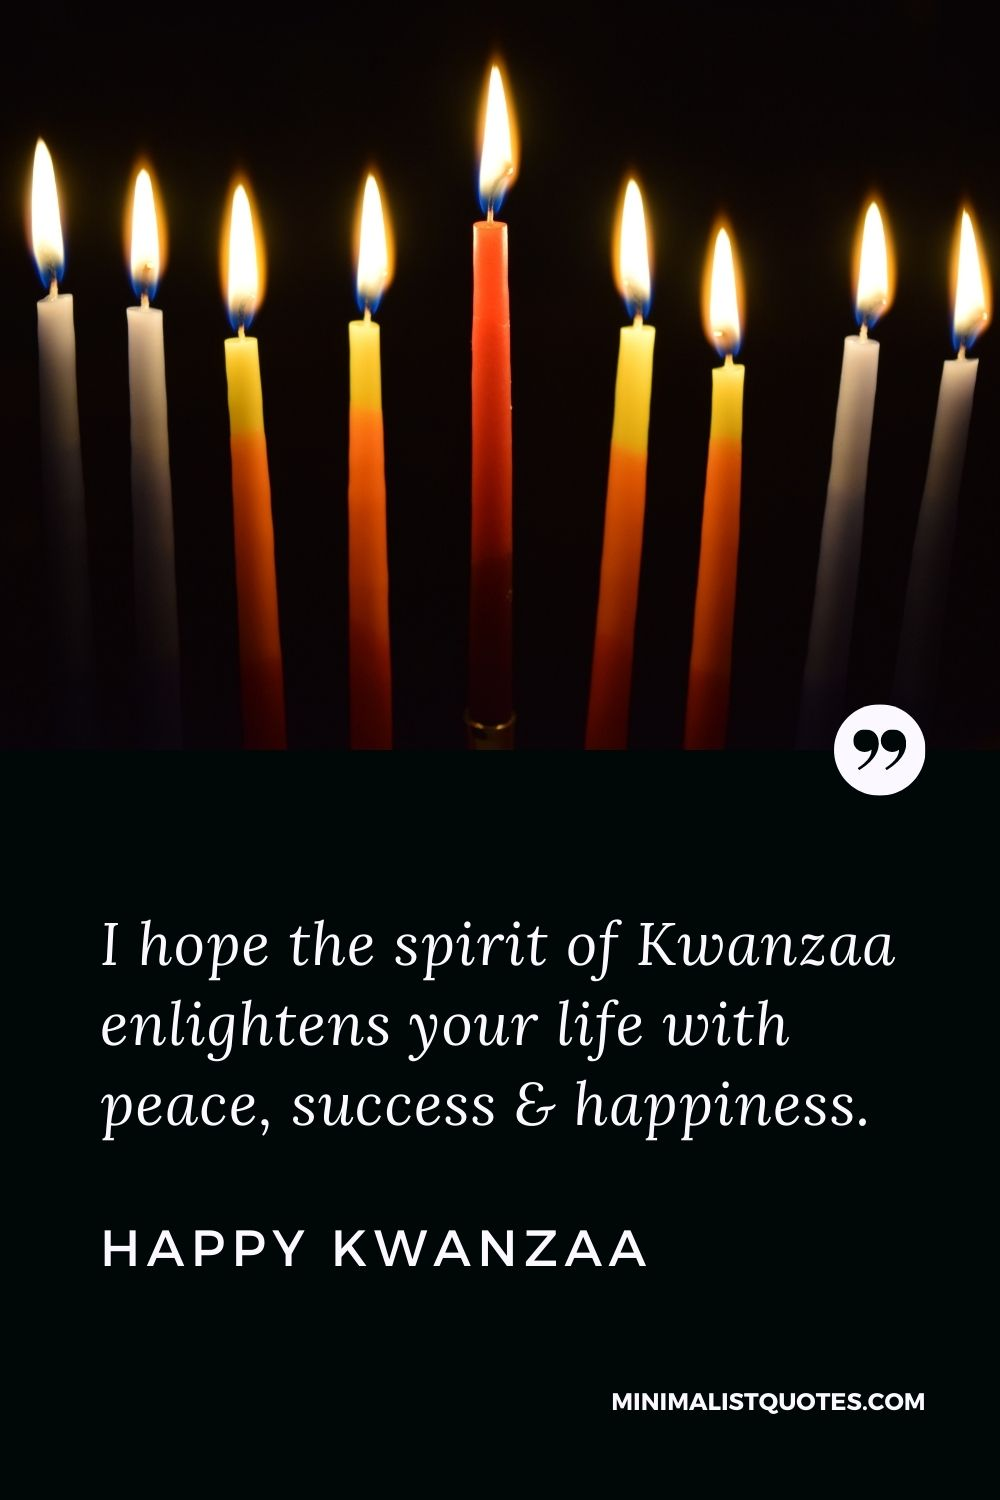 Kwanzaa Quote, Wish & Message With Image: I hope the spirit of Kwanzaa enlightens your life with peace, success & happiness. Happy Kwanzaa!